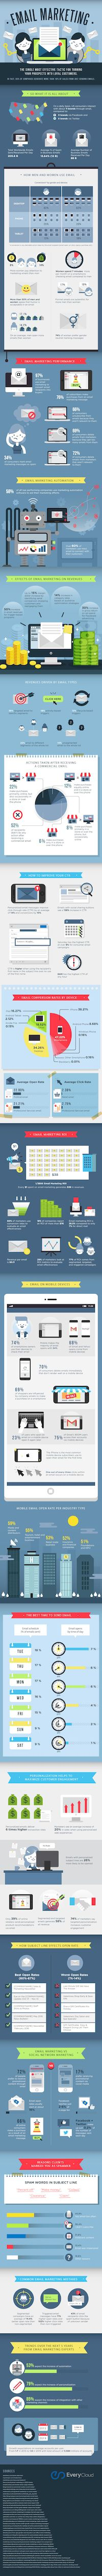 Email Marketing Stats to Guide Your 2019 Strategy [Infographic] Published Oct. 2018 Are you putting together your email marketing plan of action for Need some facts and figures to help. Email Marketing Campaign, Email Marketing Strategy, Marketing Tactics, Online Marketing, Social Media Marketing, Content Marketing, Affiliate Marketing, Marketing Articles, Business Marketing